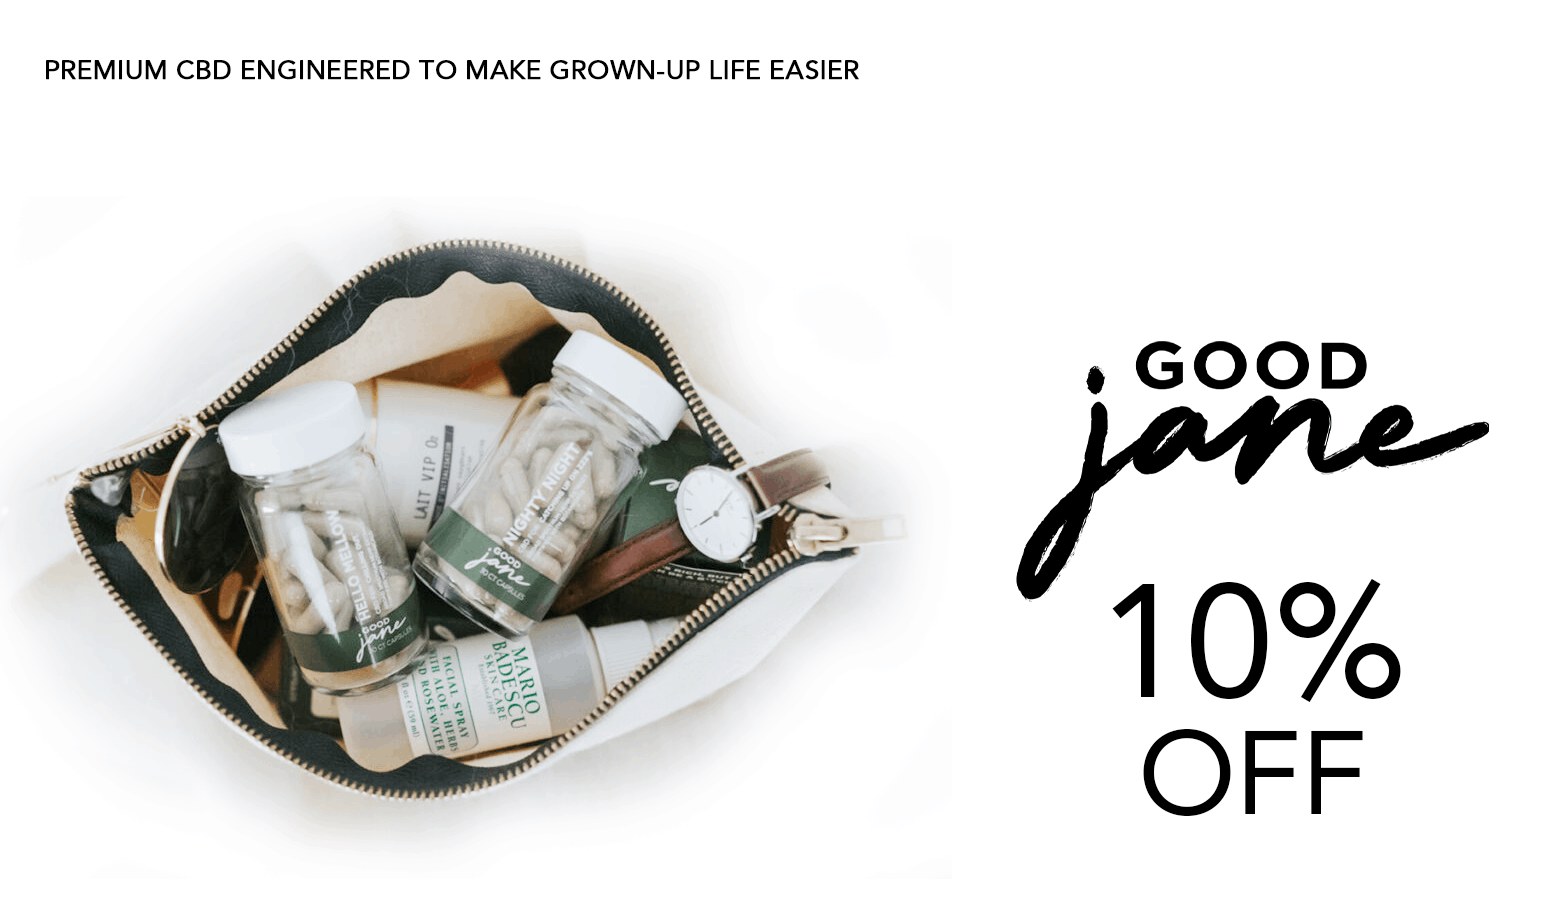 Good Jane CBD Coupon Code Offer Website